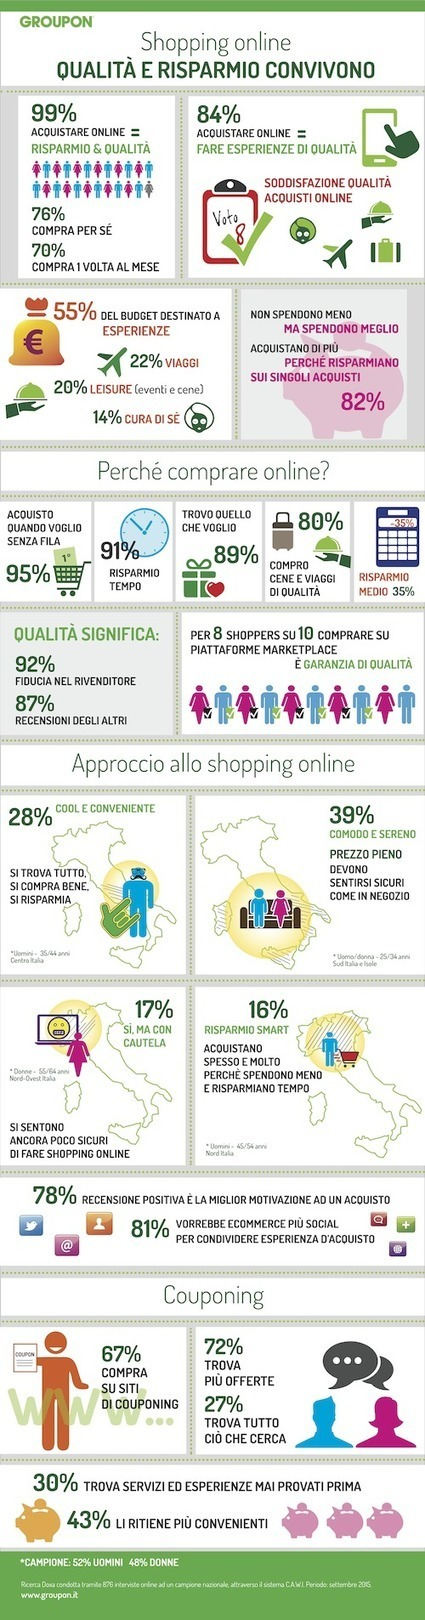 "Italiani ed ecommerce: spendere meno è diventato ""cool"" 